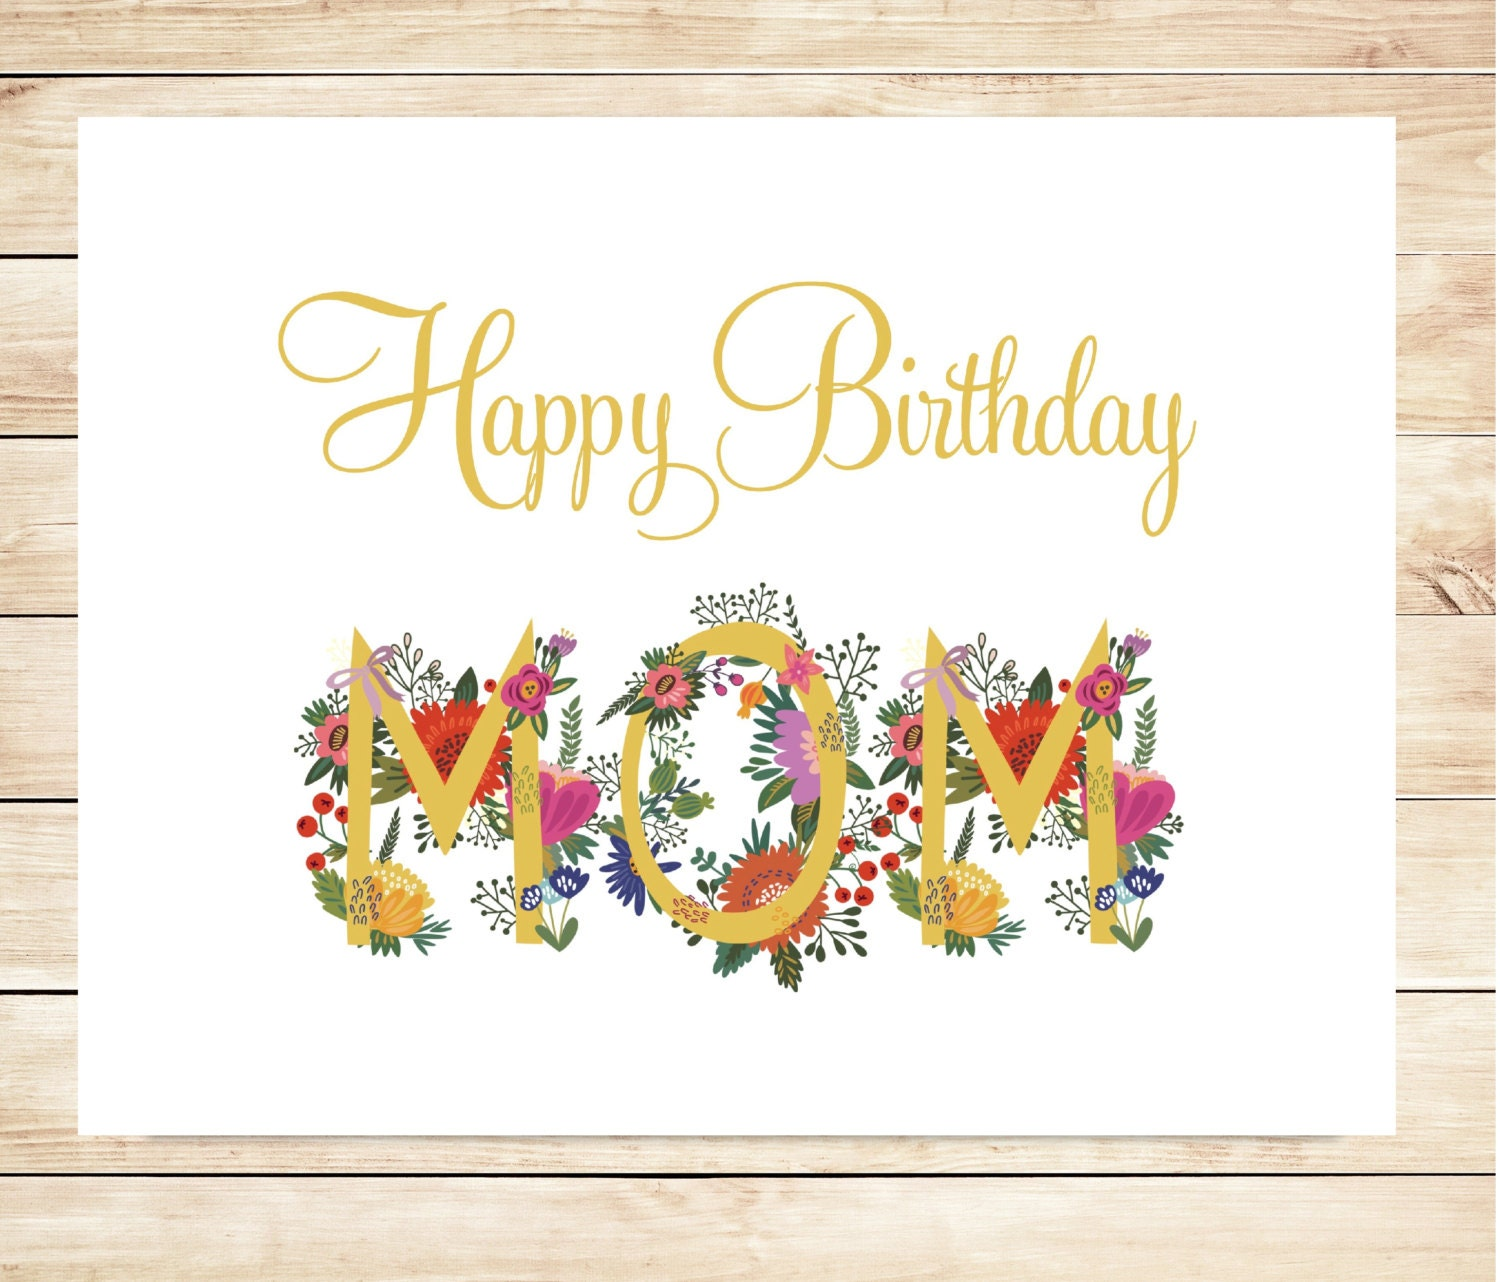 Eloquent image with birthday cards for mom printable